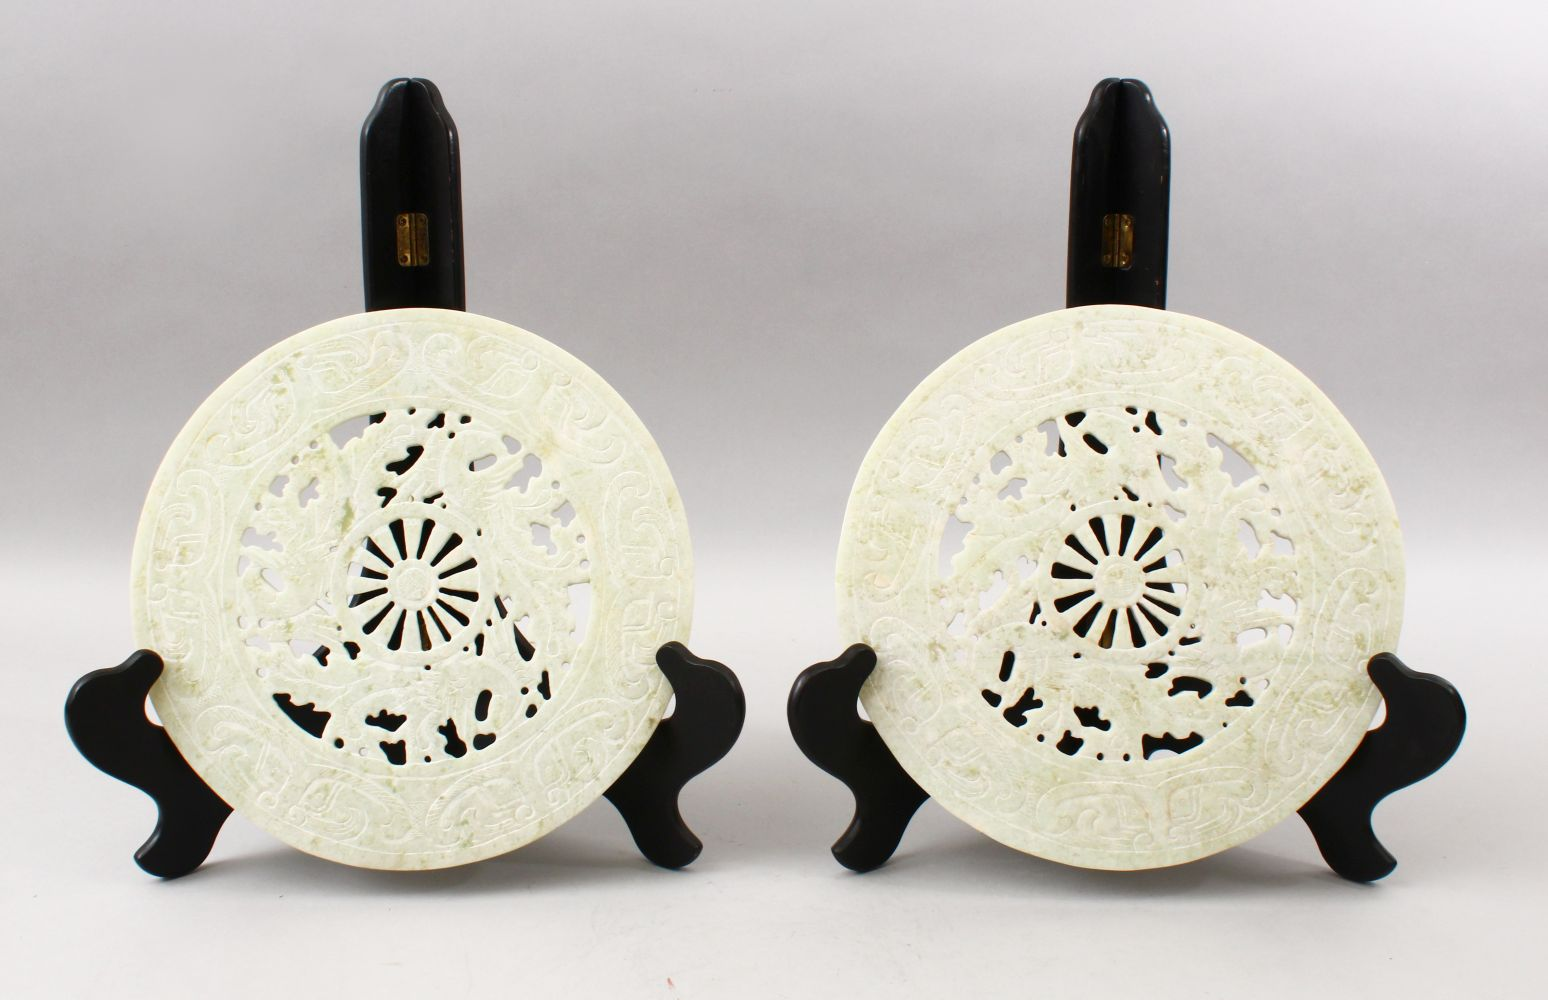 TWO 20TH CENTURY CHINESE CARVED HARDSTONE / JADELIKE BI - DISKS, each disk carved with phoenix birds